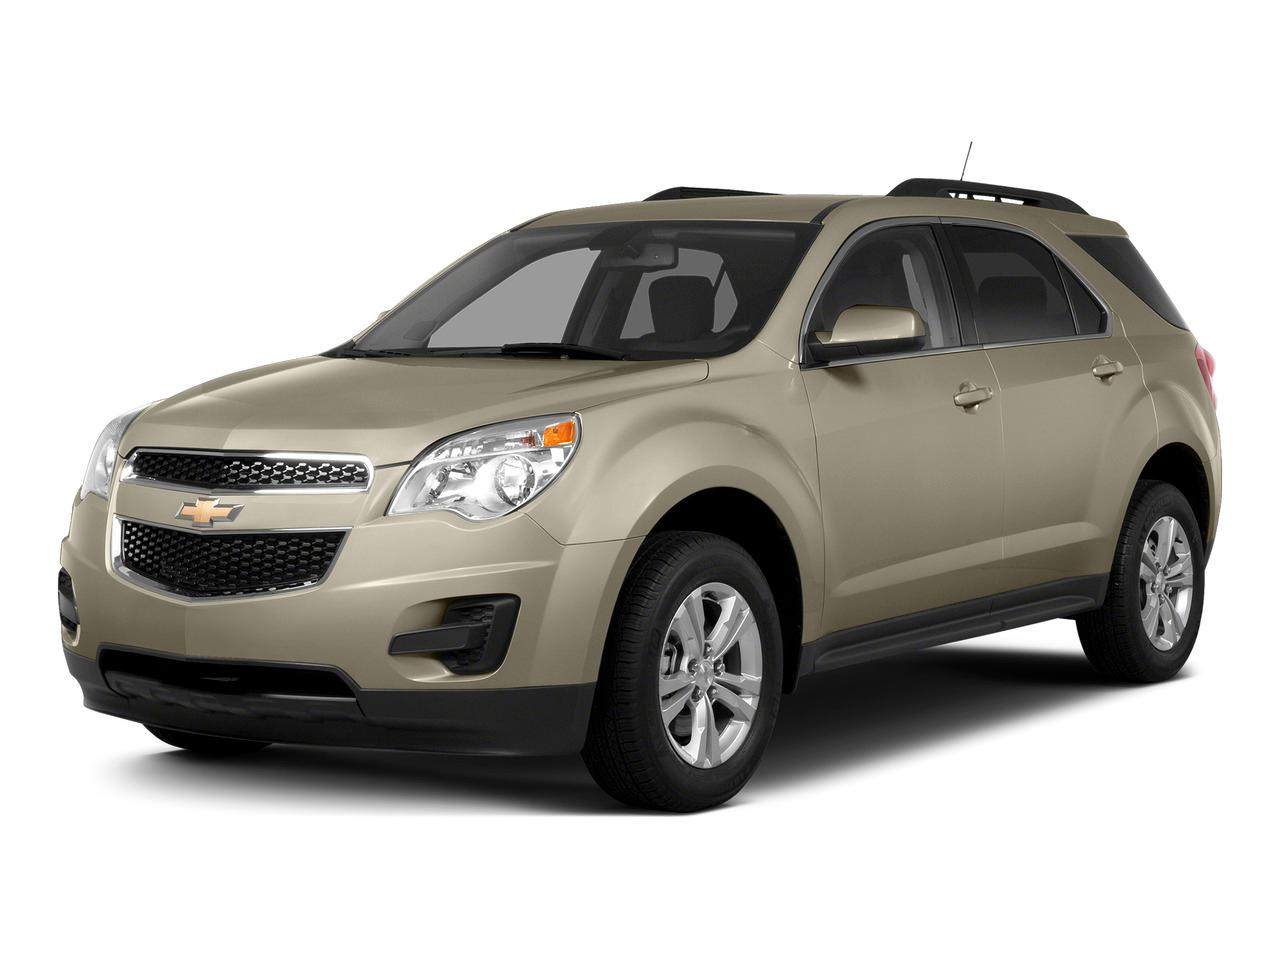 2015 Chevrolet Equinox Vehicle Photo in Trevose, PA 19053-4984